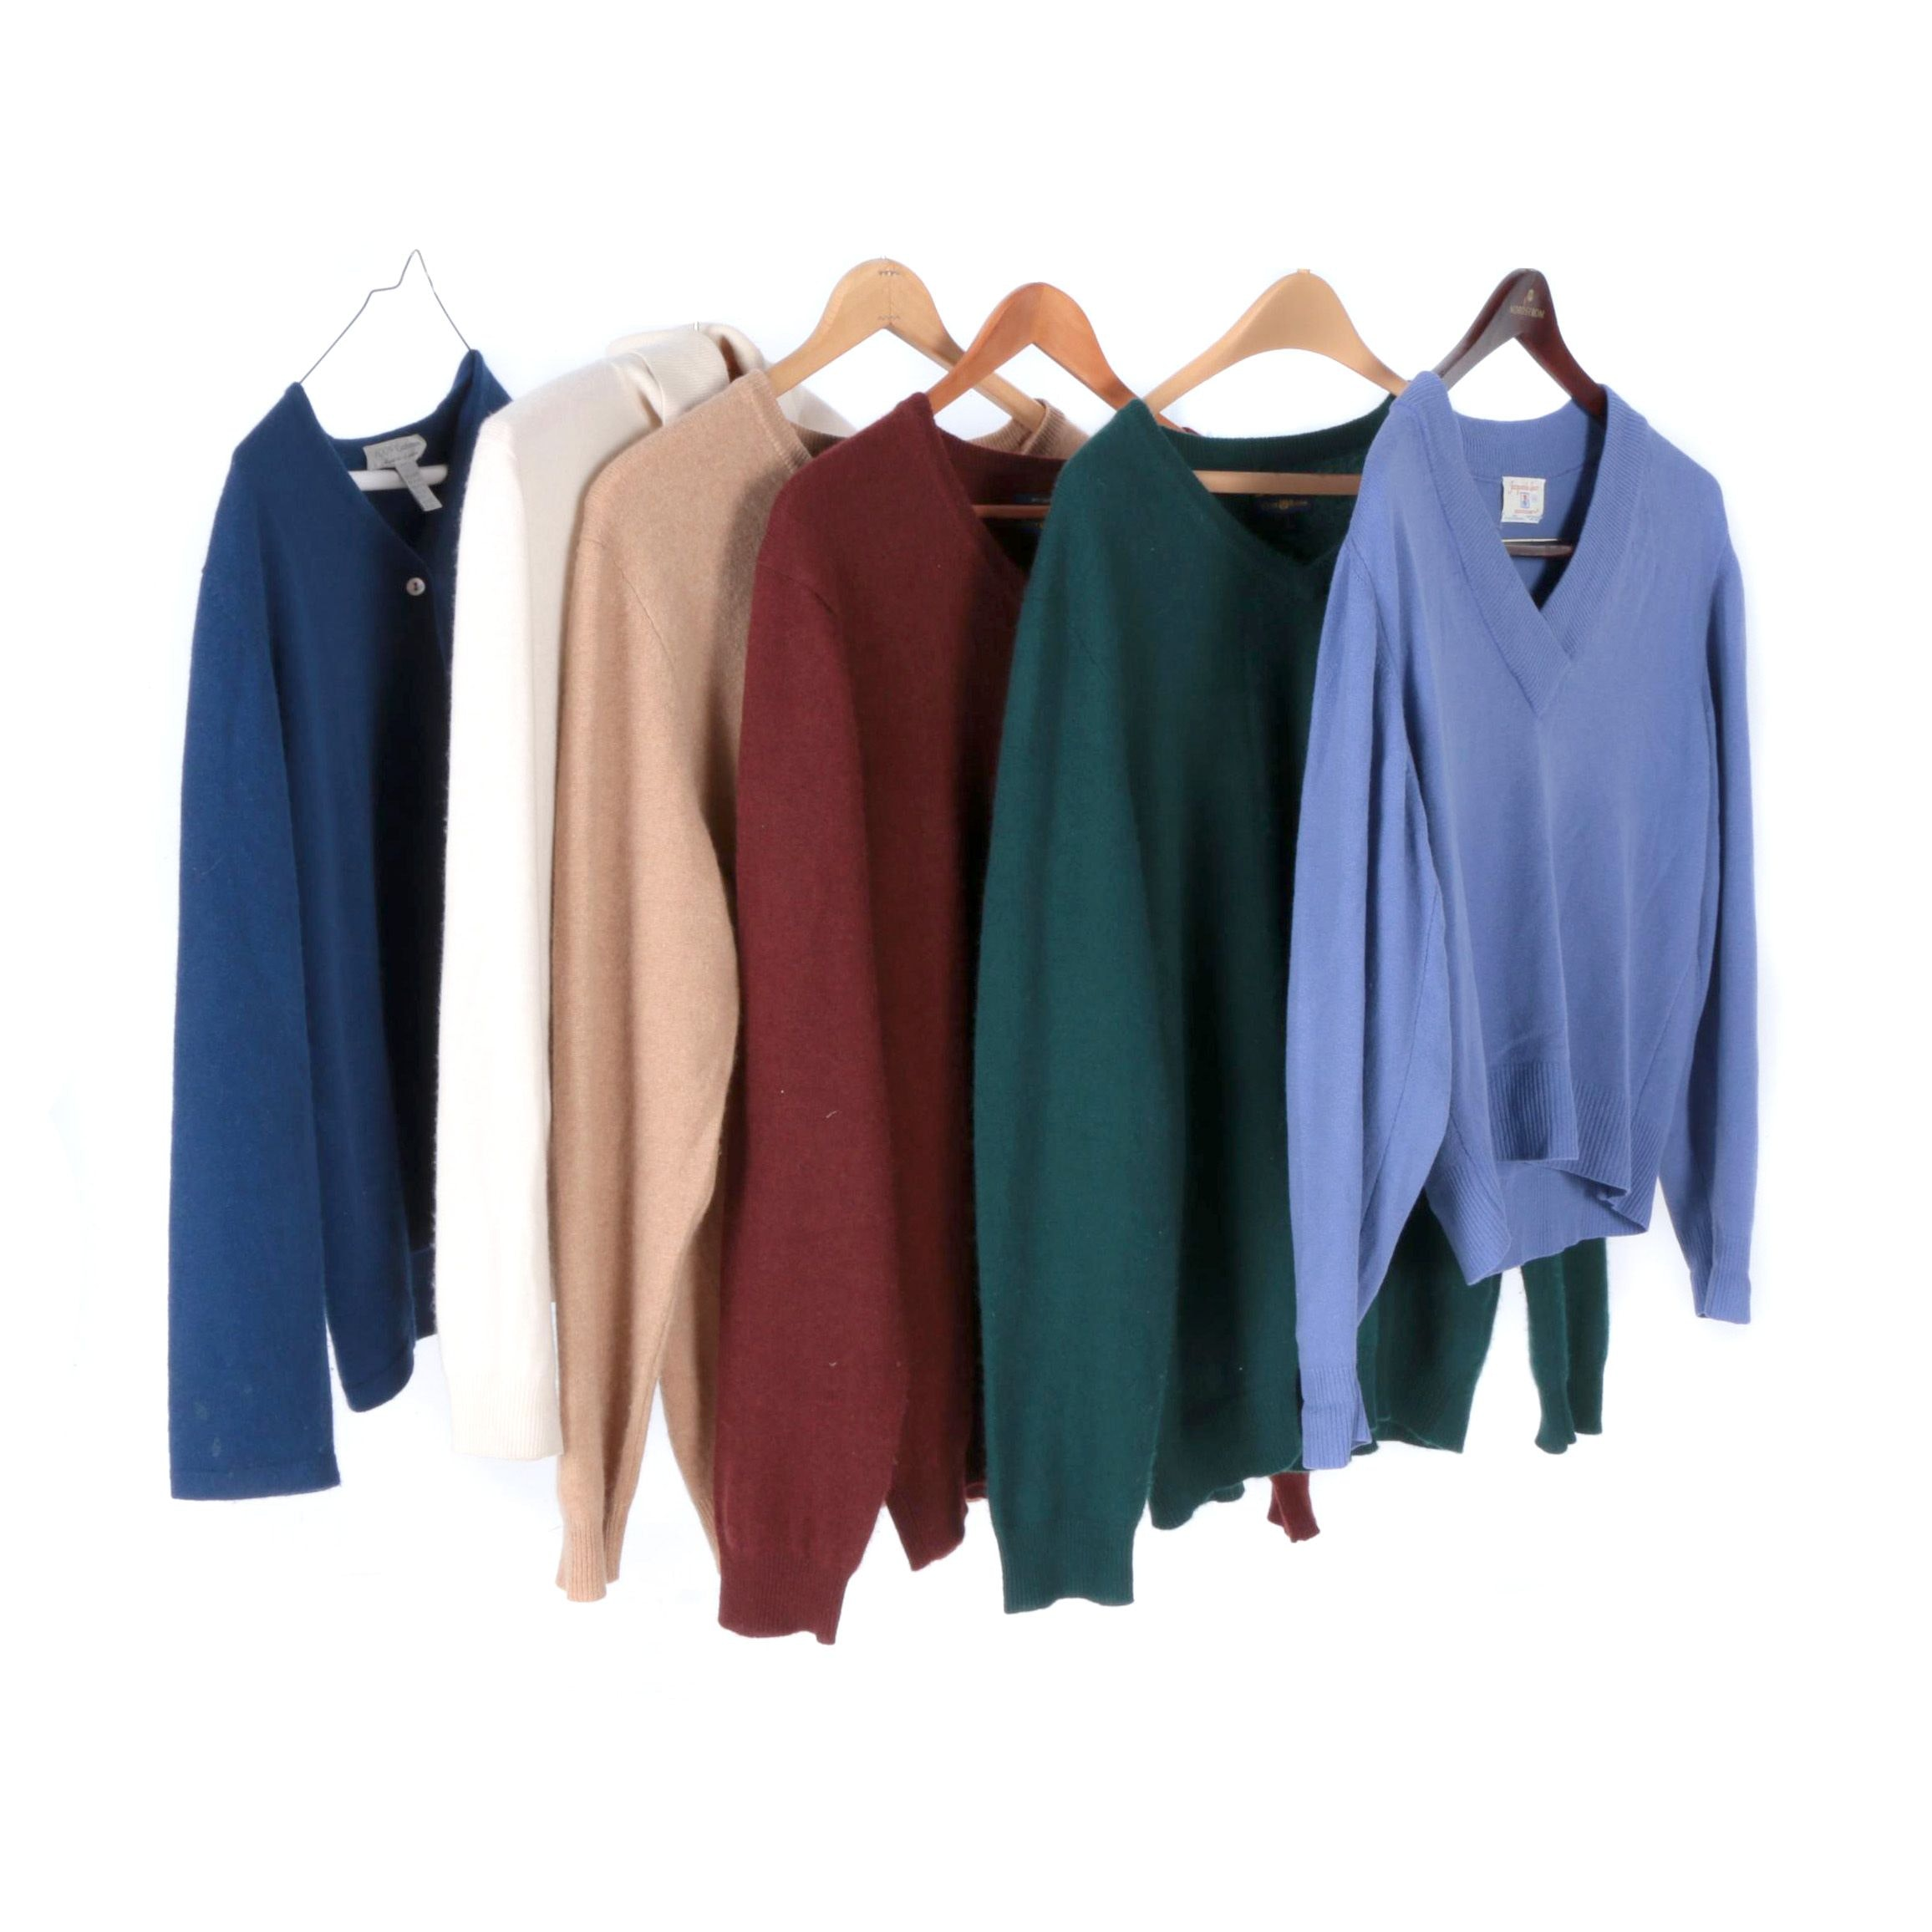 Women's and Men's Cashmere Sweaters Including Club Room